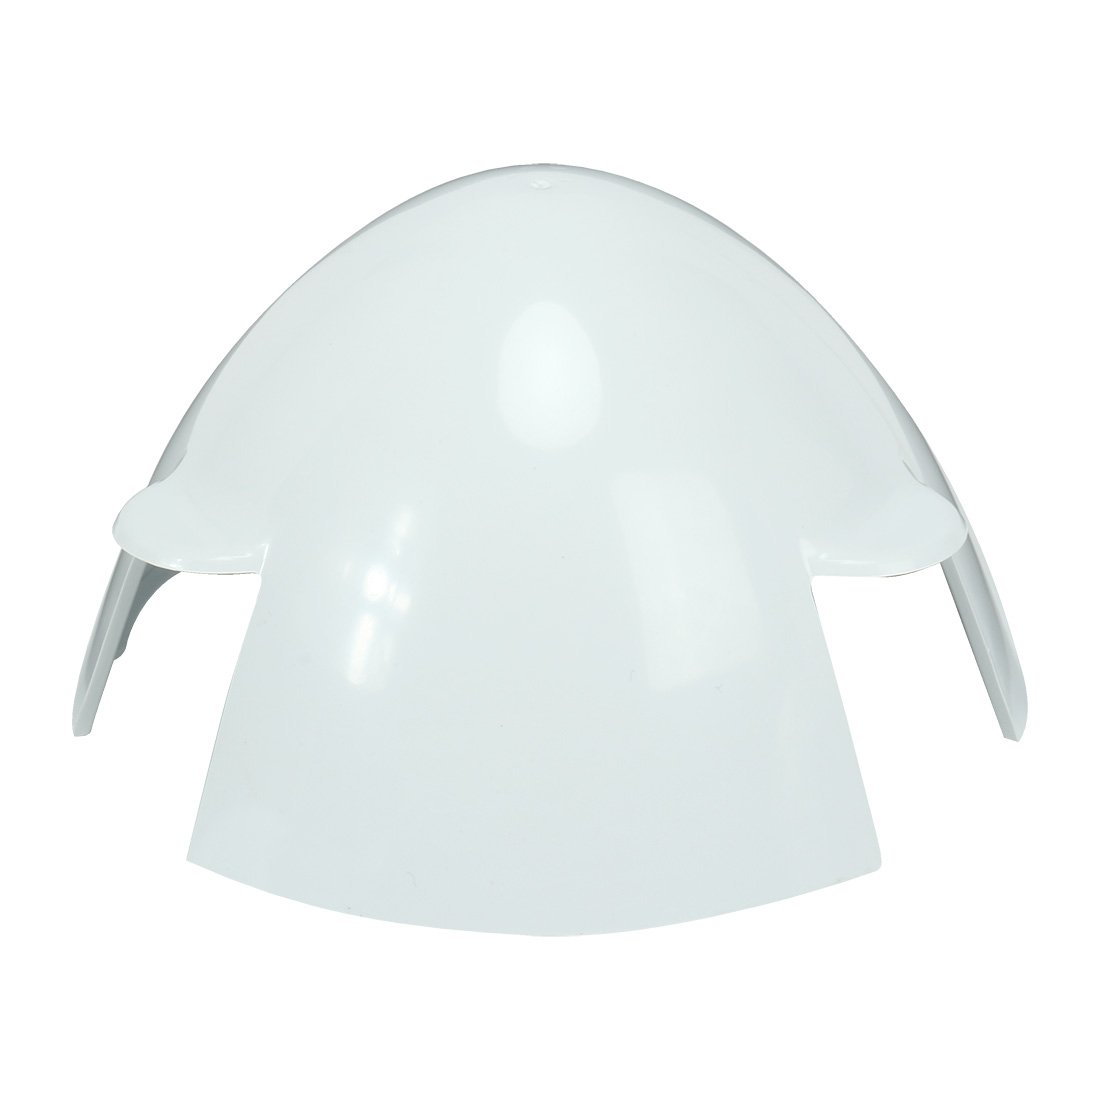 uxcell NE-S Plastic Nose Cap for 3 Leaf Air Breeze Wind Turbine Wind Generator by uxcell